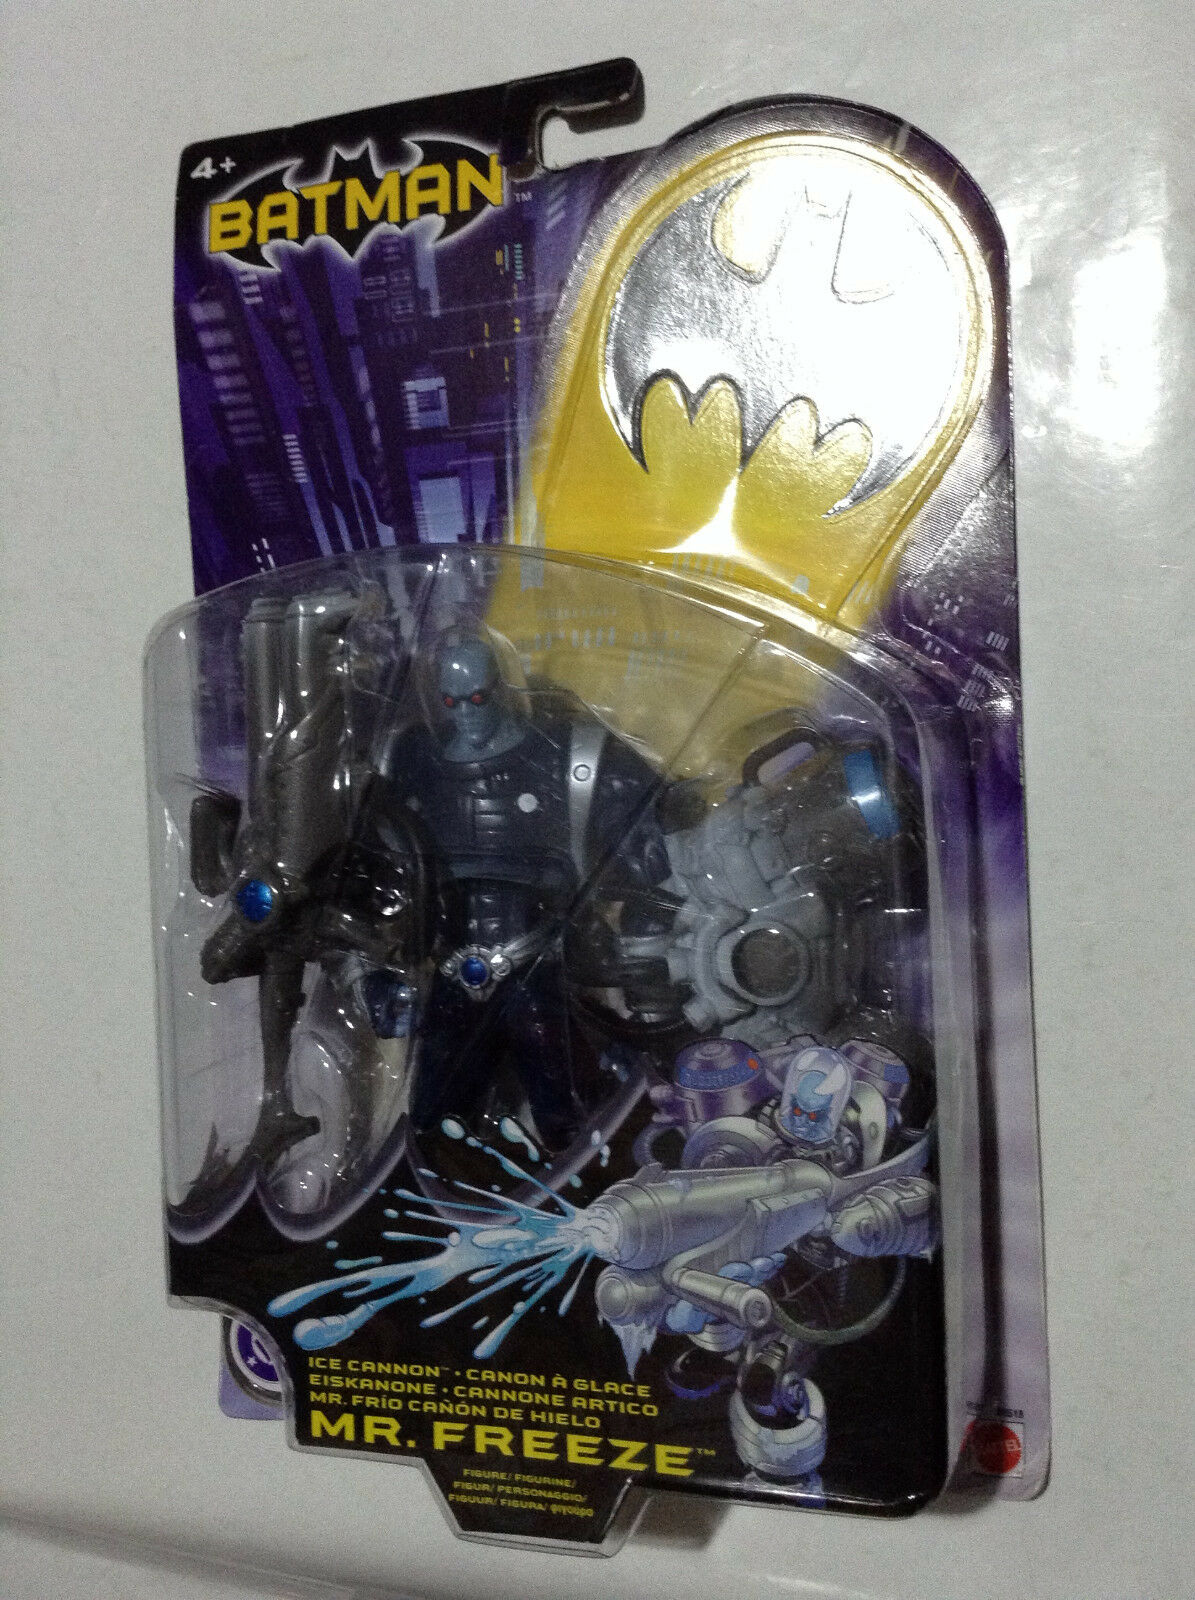 BATMAN ICE CANNON MR.FREEZE CLASSIC FIGURE 2003 DC MATTEL EUROPEAN EDITION NEW52